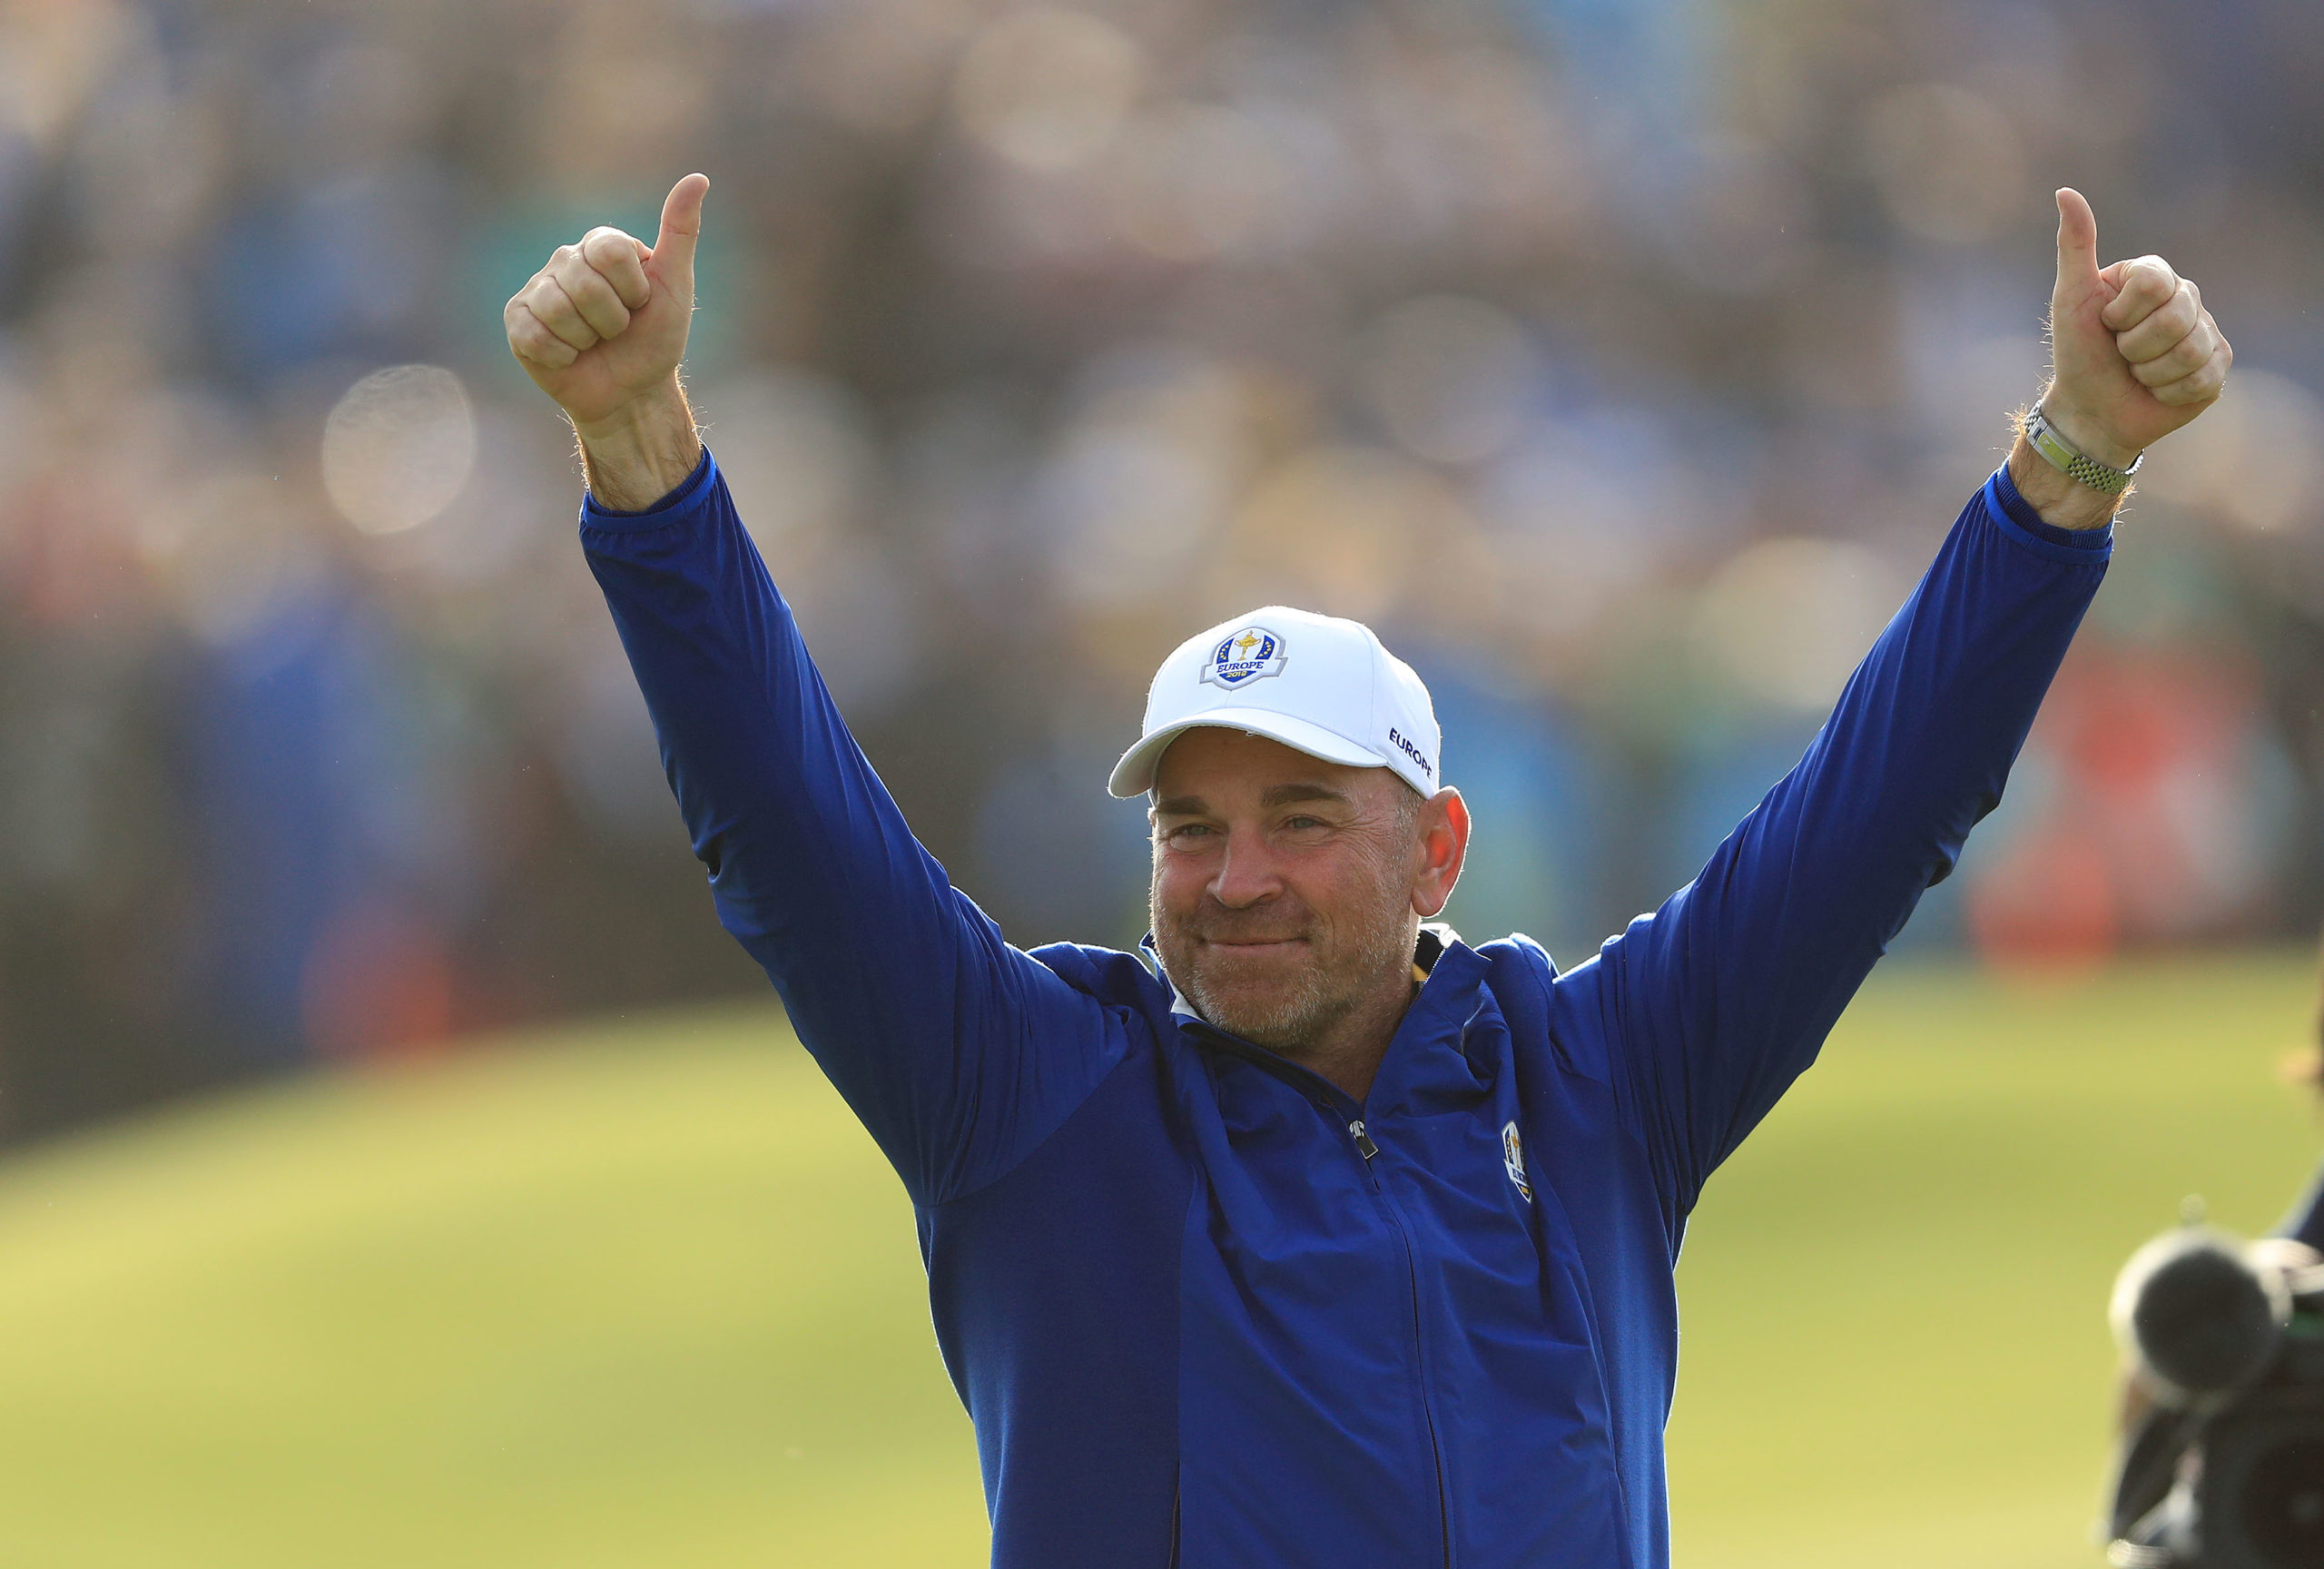 Thomas Bjørn, winning captain in the 2018 Ryder Cup, will return to Valderrama (credit © Getty Images)